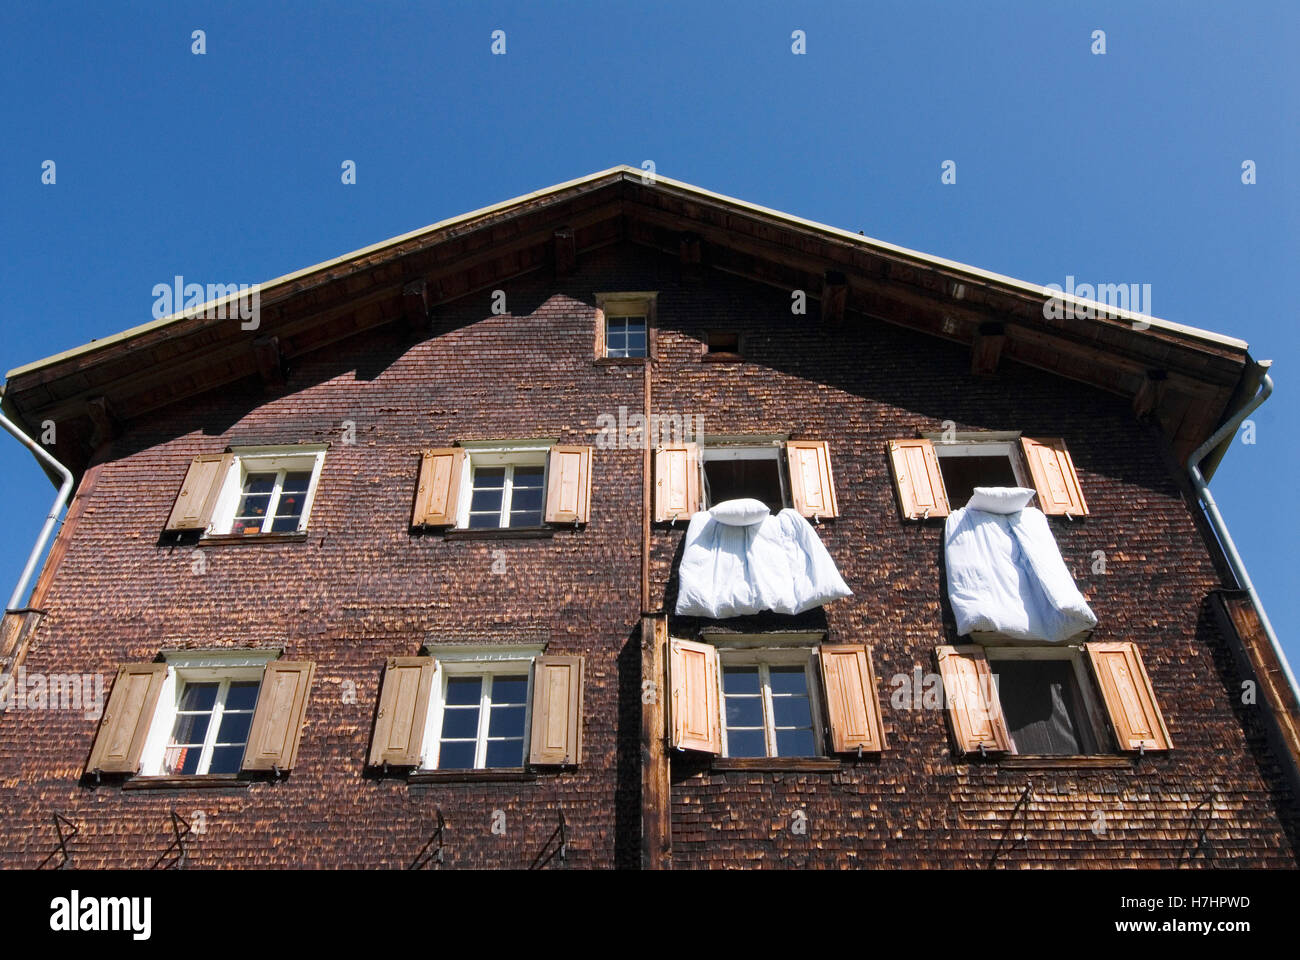 Bedlinen hanging out of the windows in a wooden house in Glas, canton of Grisons, Switzerland, Europe - Stock Image